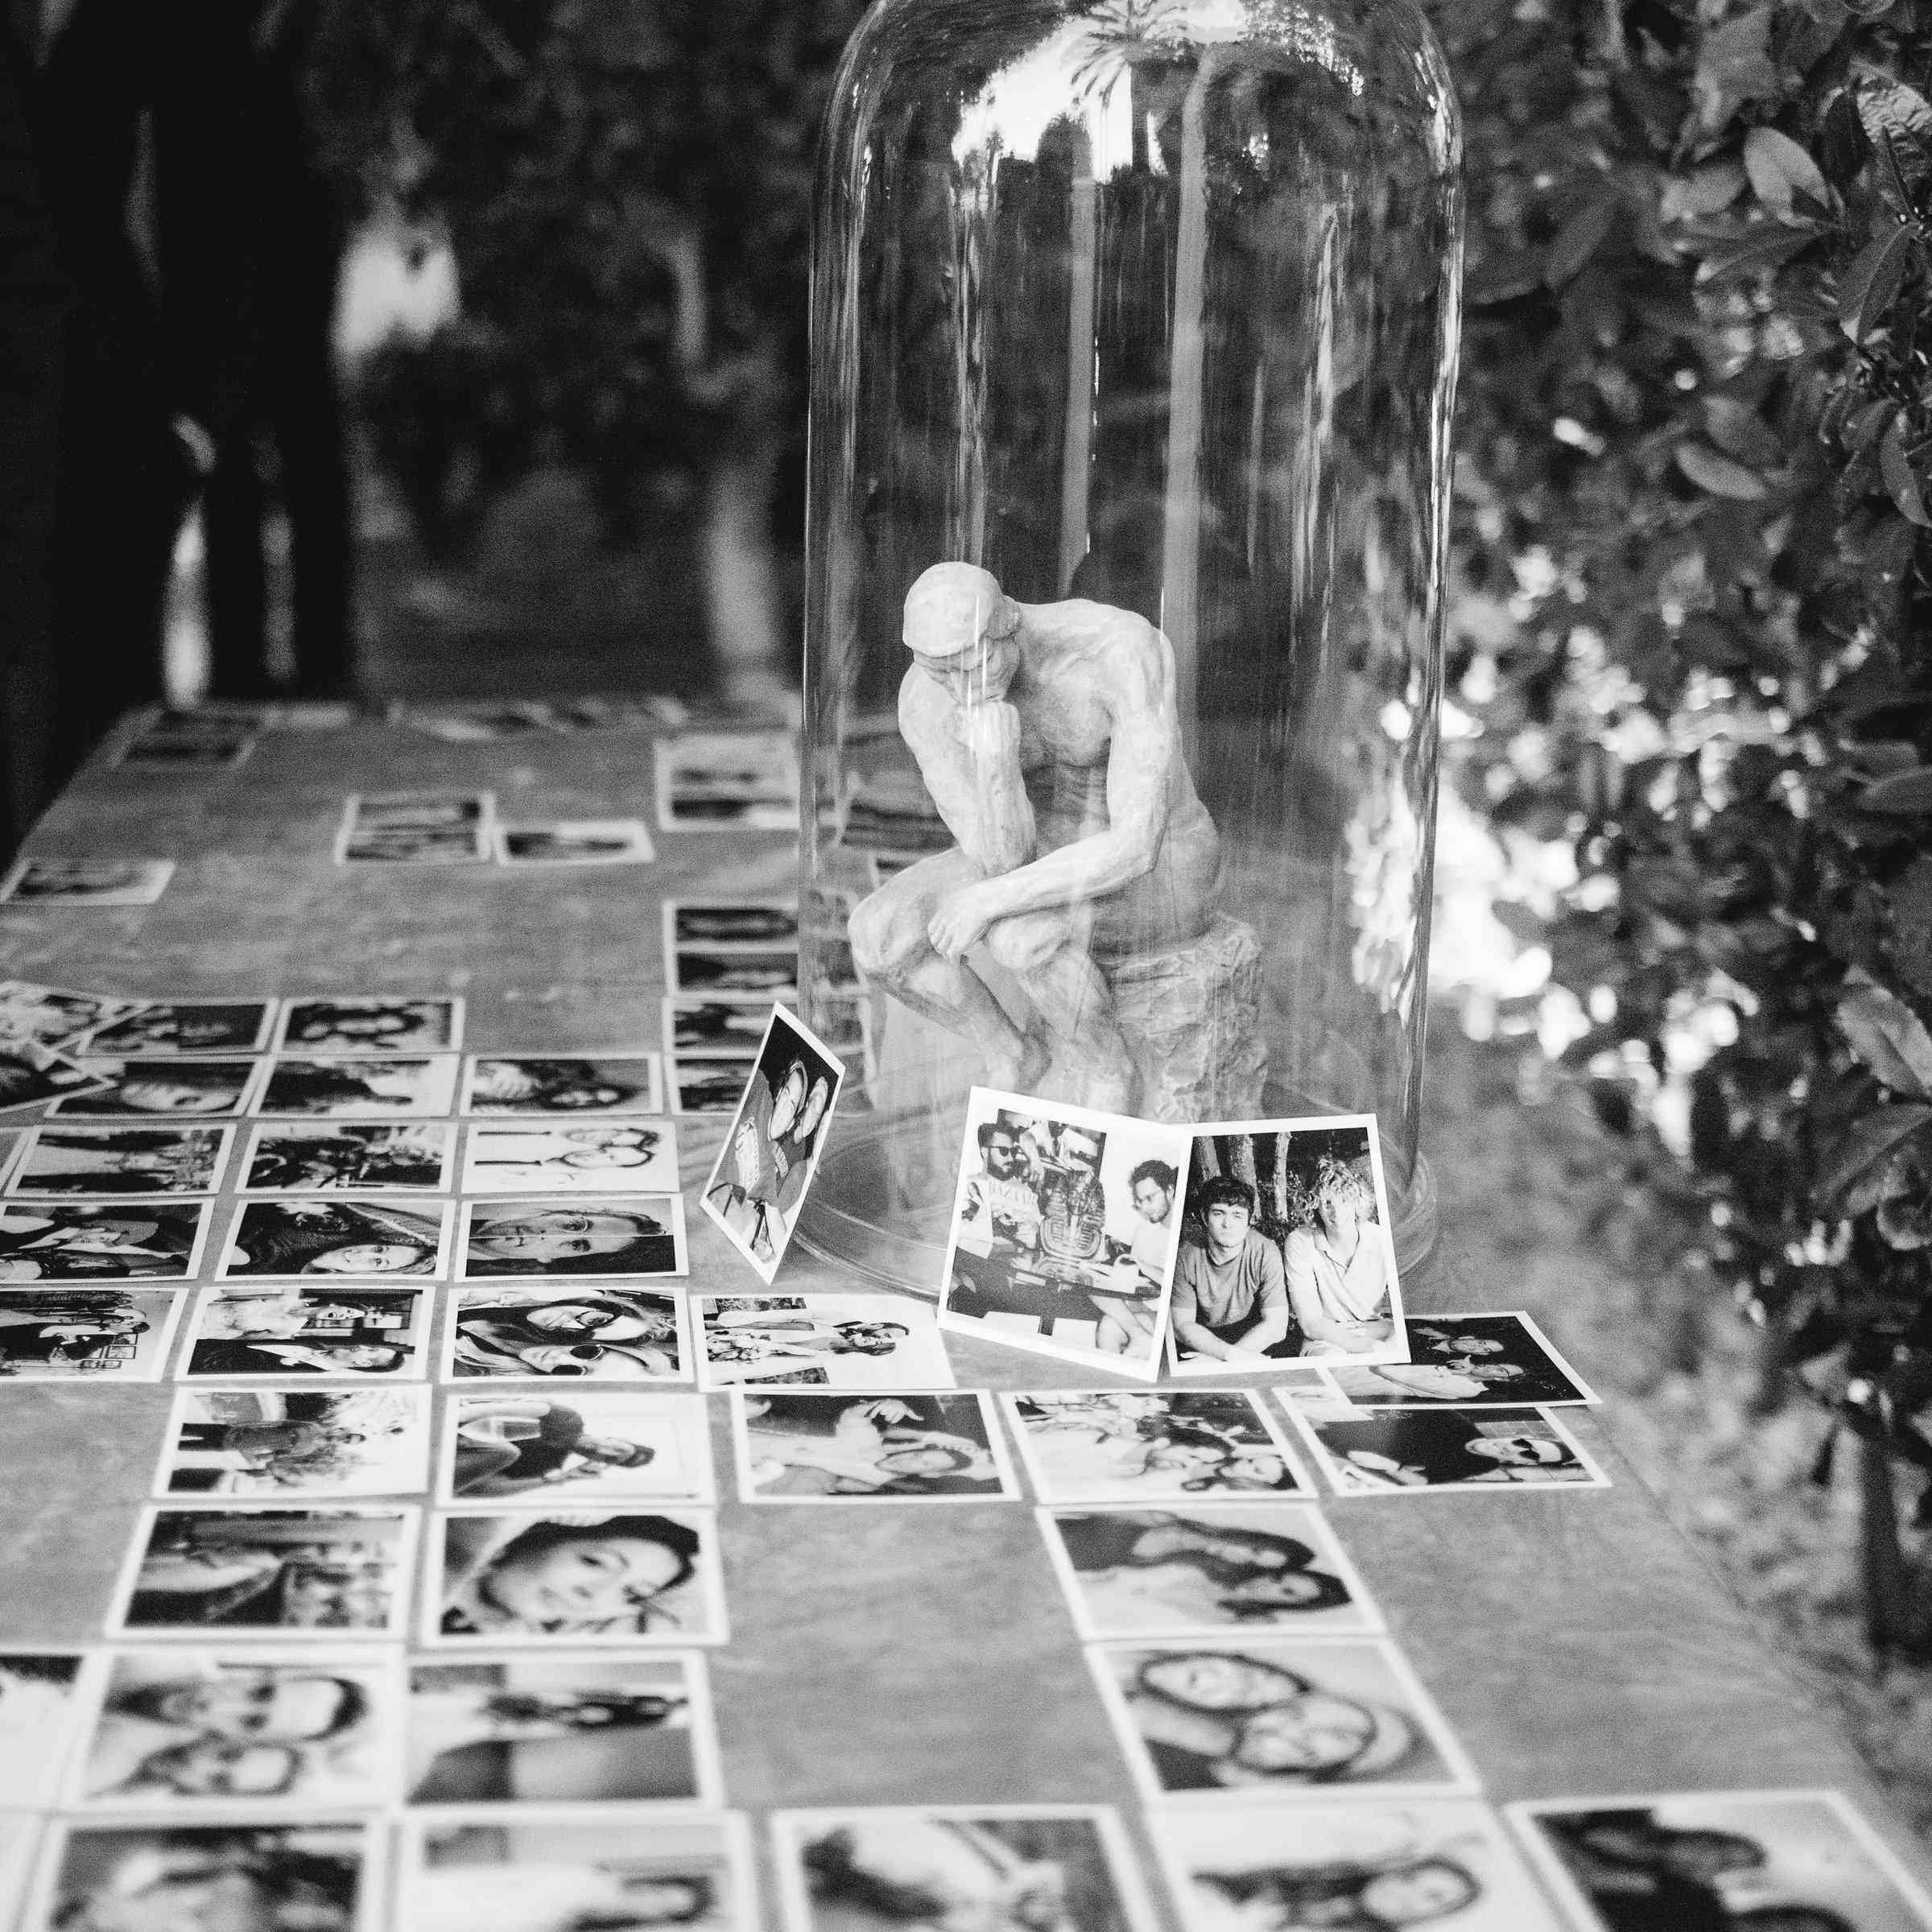 <p>polaroid photos from guests portraits</p><br><br>